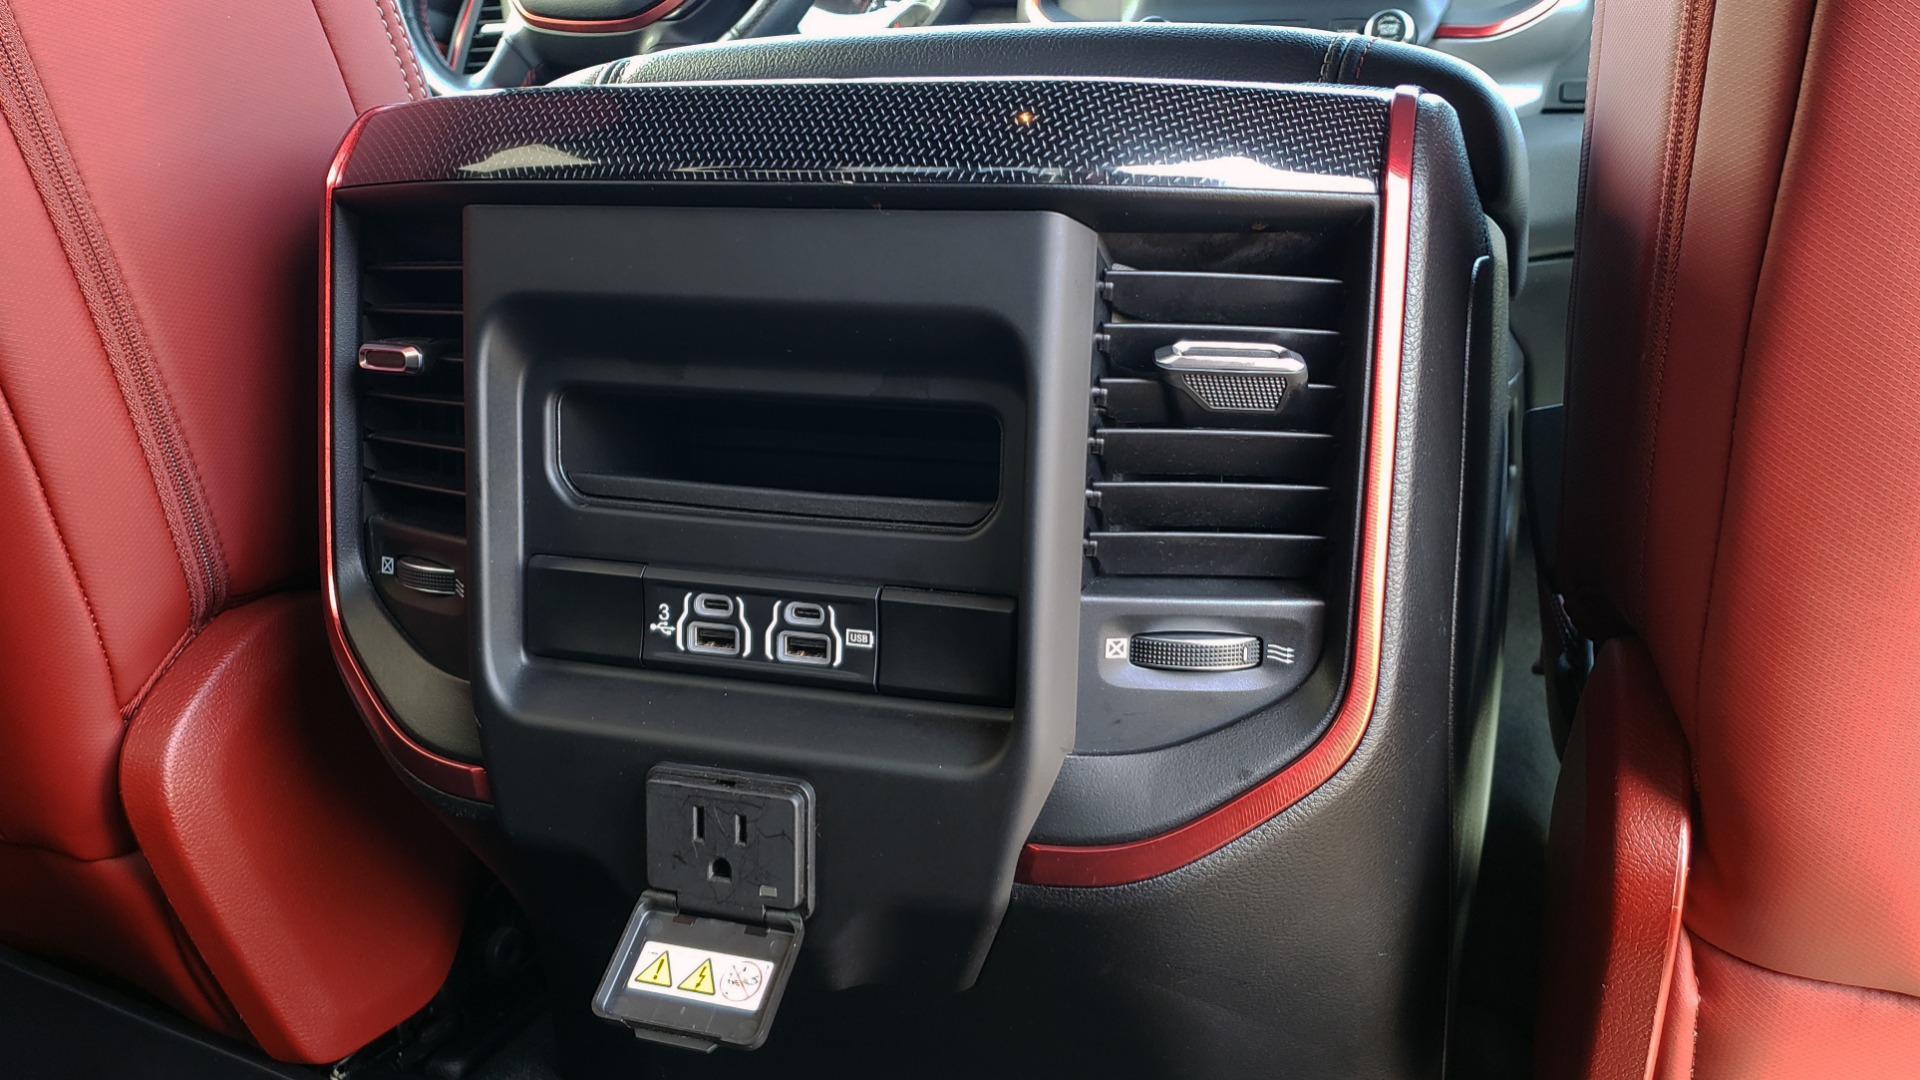 Used 2019 Ram 1500 REBEL CREWCAB 4X4 / 5.7L V8 HEMI / 8-SPD AUTO / REARVIEW for sale Sold at Formula Imports in Charlotte NC 28227 82